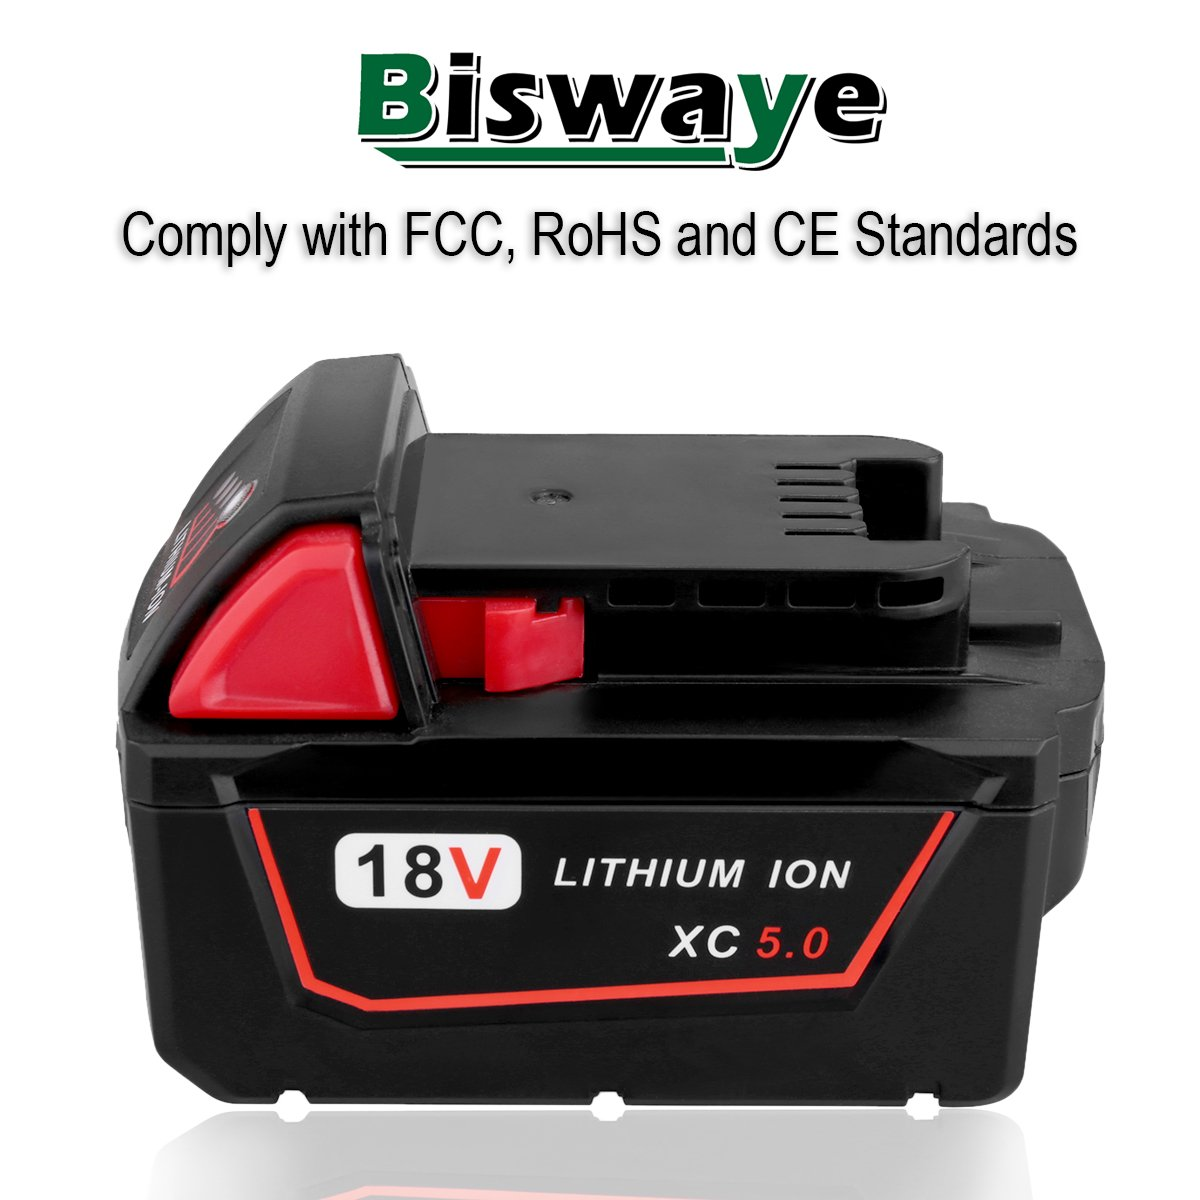 Biswaye 2 Pack 18V 5.0Ah Replacement Battery for Milwaukee 18V High Capacity Red Lithium Cordless Power Tools Battery M18 XC M18B 48-11-1820 48-11-1850 48-11-1828 by Biswaye (Image #8)